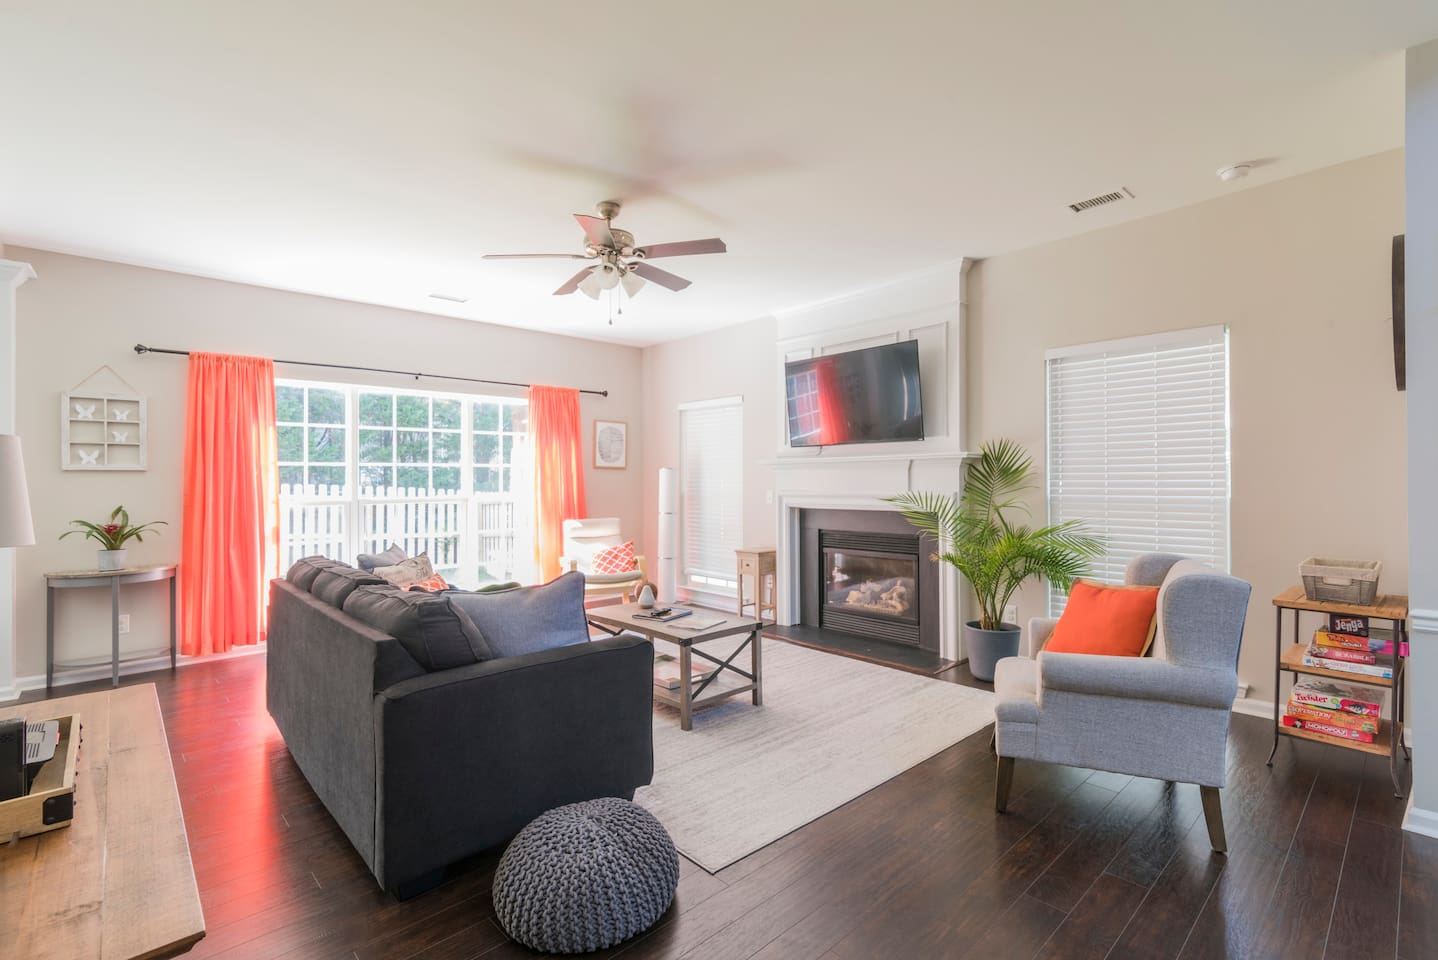 """""""Our family was thrilled with Randi's place! Honestly, it exceeded our expectations. It was beautifully decorated, spotlessly clean ... We loved how close we were to 485, shopping and restaurants. We would highly recommend this stay!"""""""